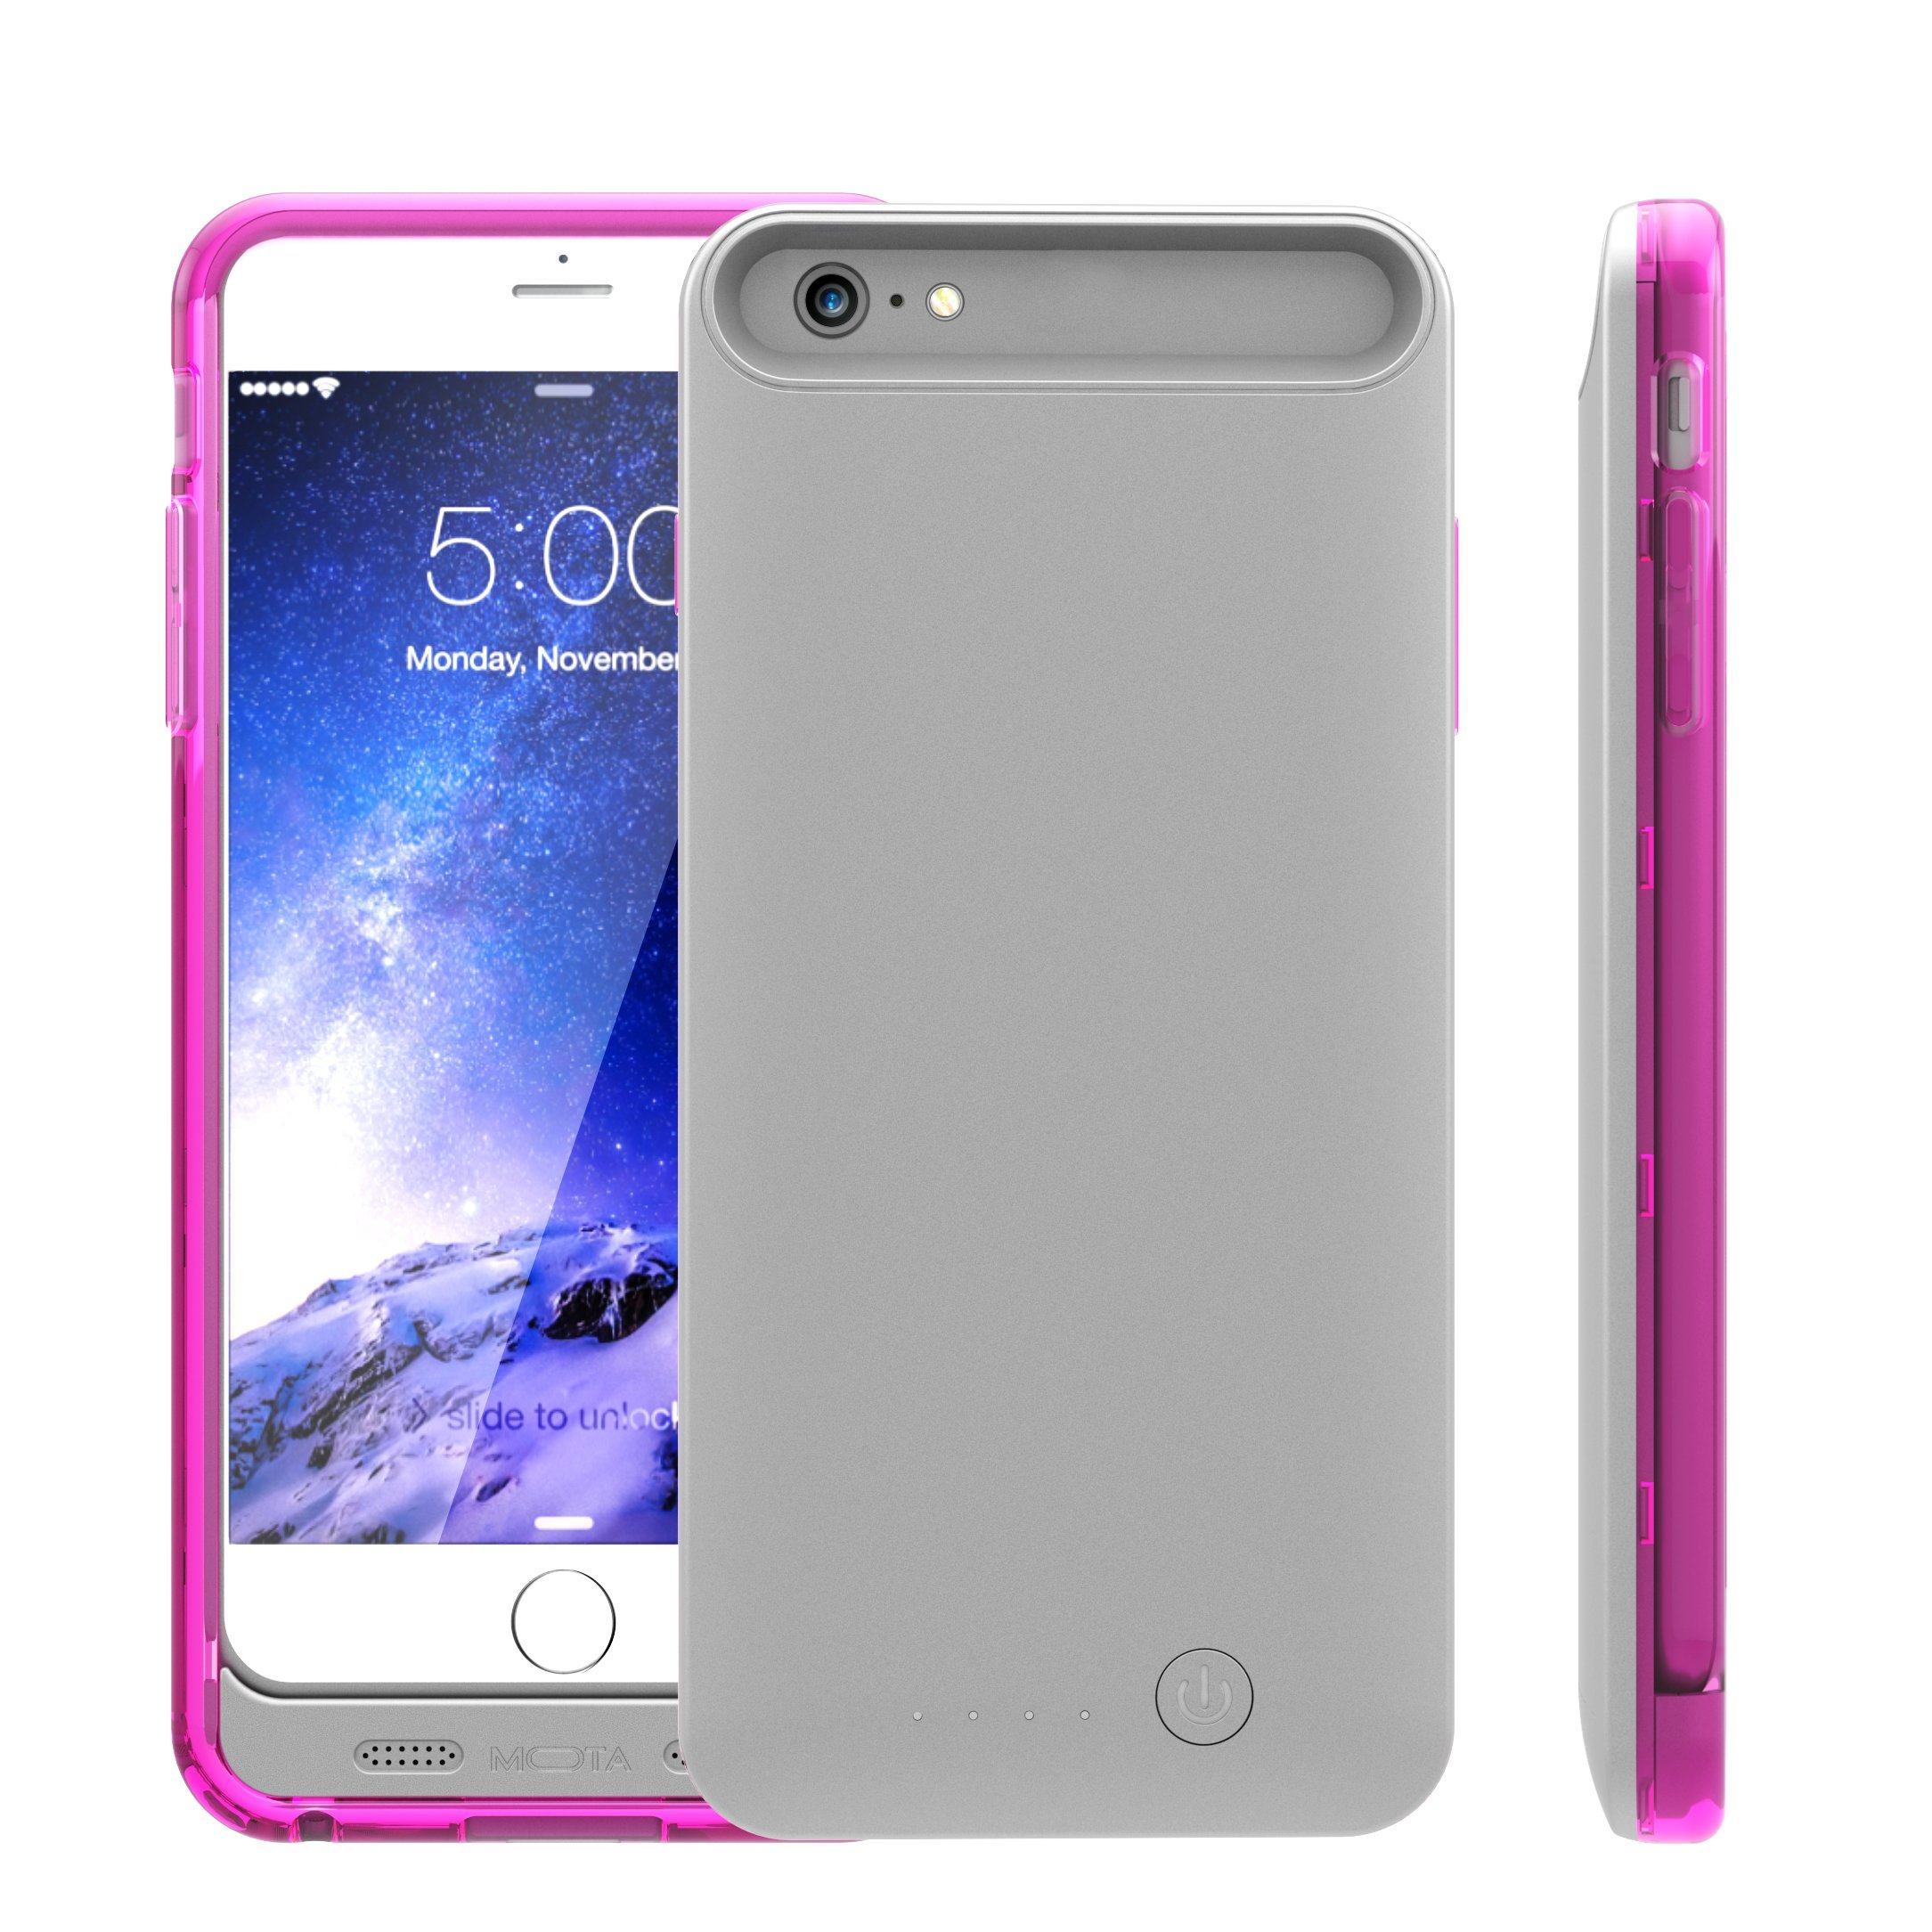 TAMO iPhone 6/6s Extended Battery Case, TAMO 2400 mAh dual-purposed Ultra-Slim Protective Extended Battery Case - Pink - Battery - Retail Packaging - Pink by TAMO (Image #2)